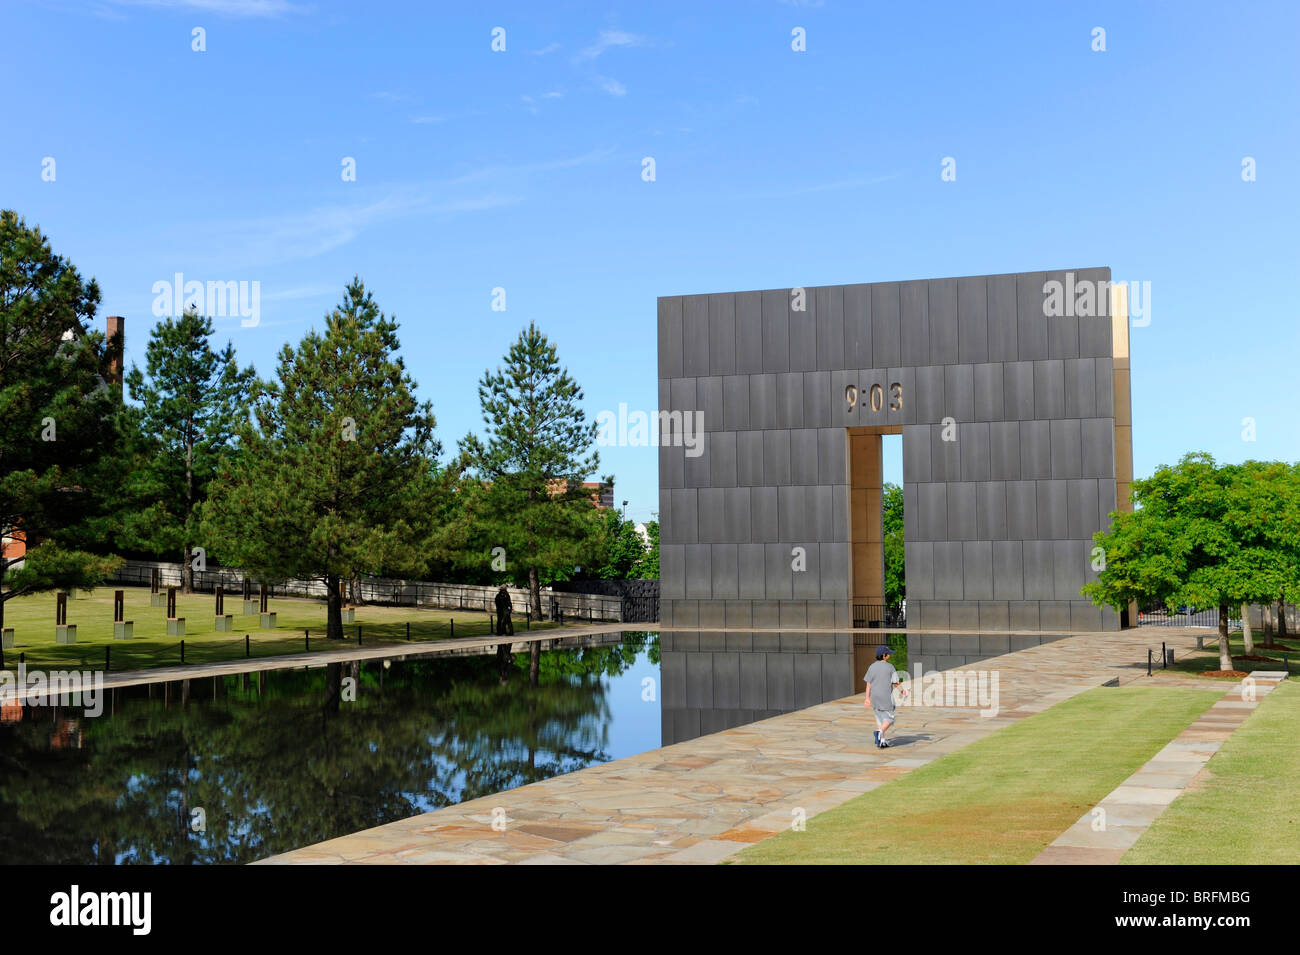 Wall marking time of bombing 9:03 Oklahoma City Bombing Site Alfred P Murrah Building National Memorial Stock Photo